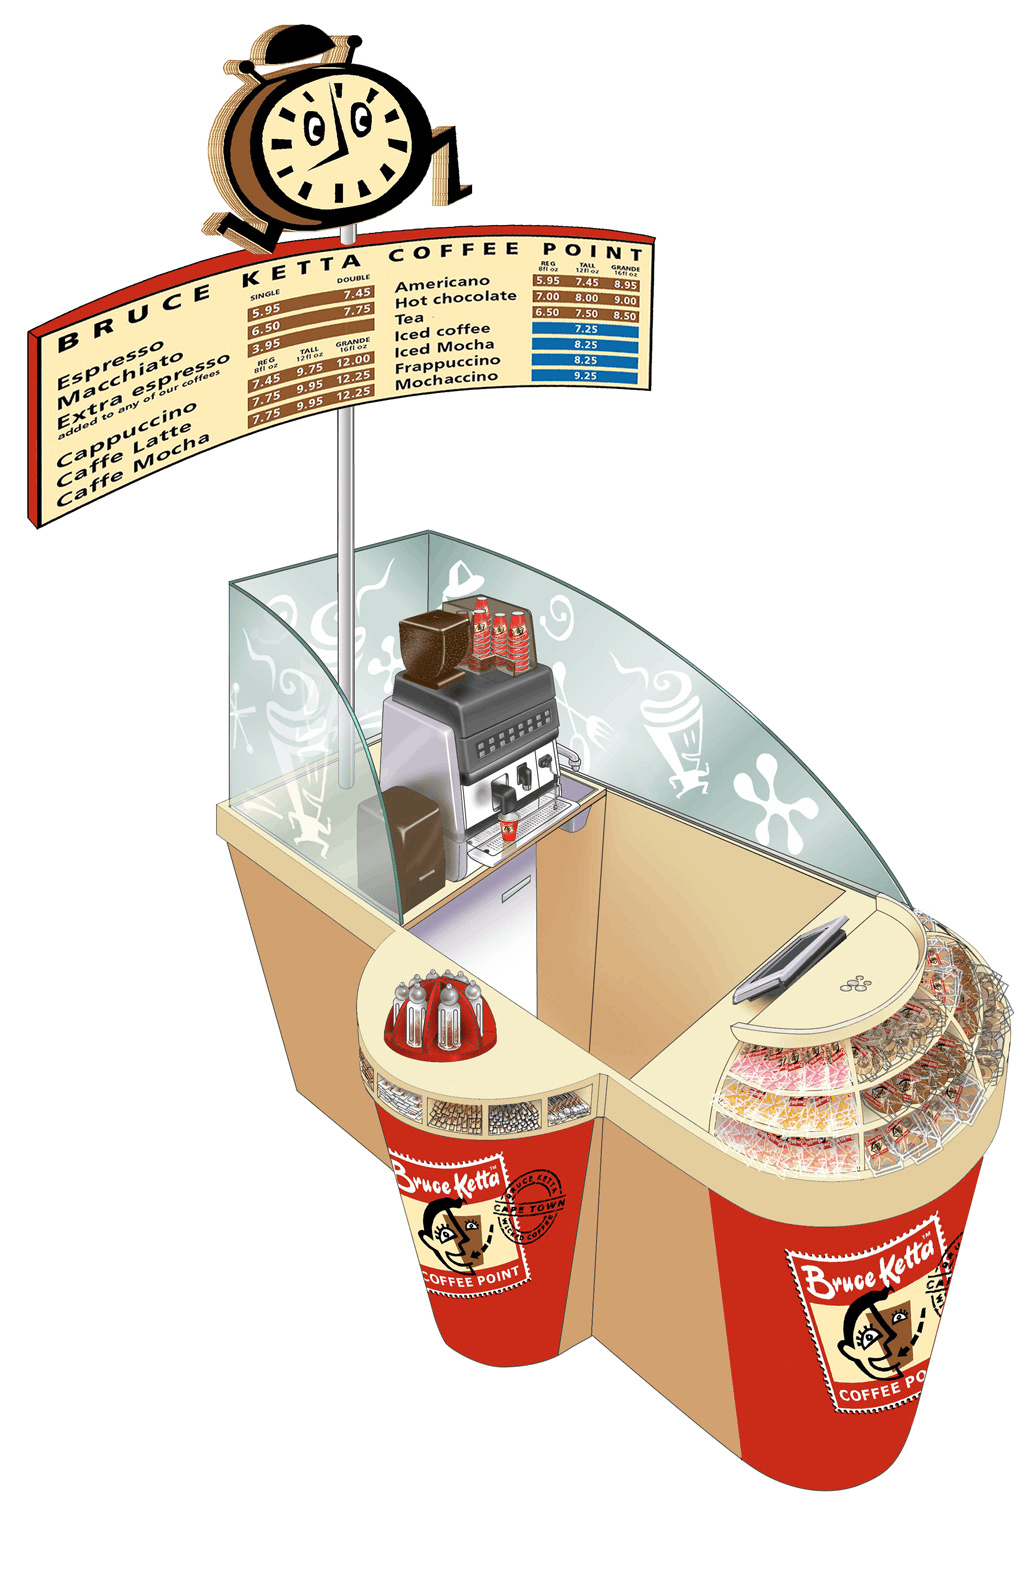 An illustration of the perspective view, with the signage, equipment, sugar and spices dispensers added.